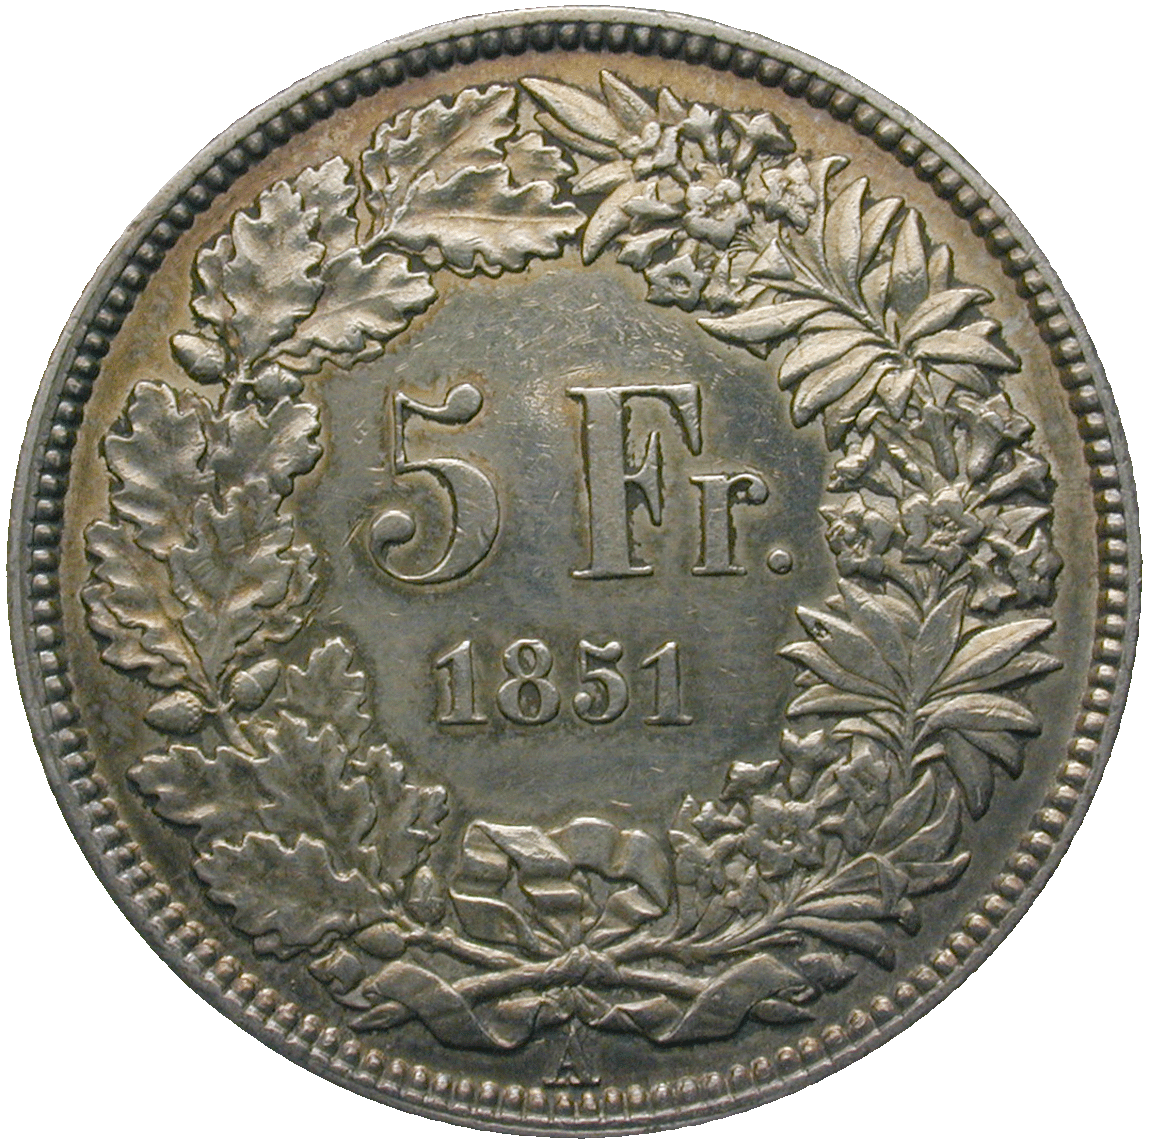 Swiss Confederation, 5 Francs 1851 (reverse)